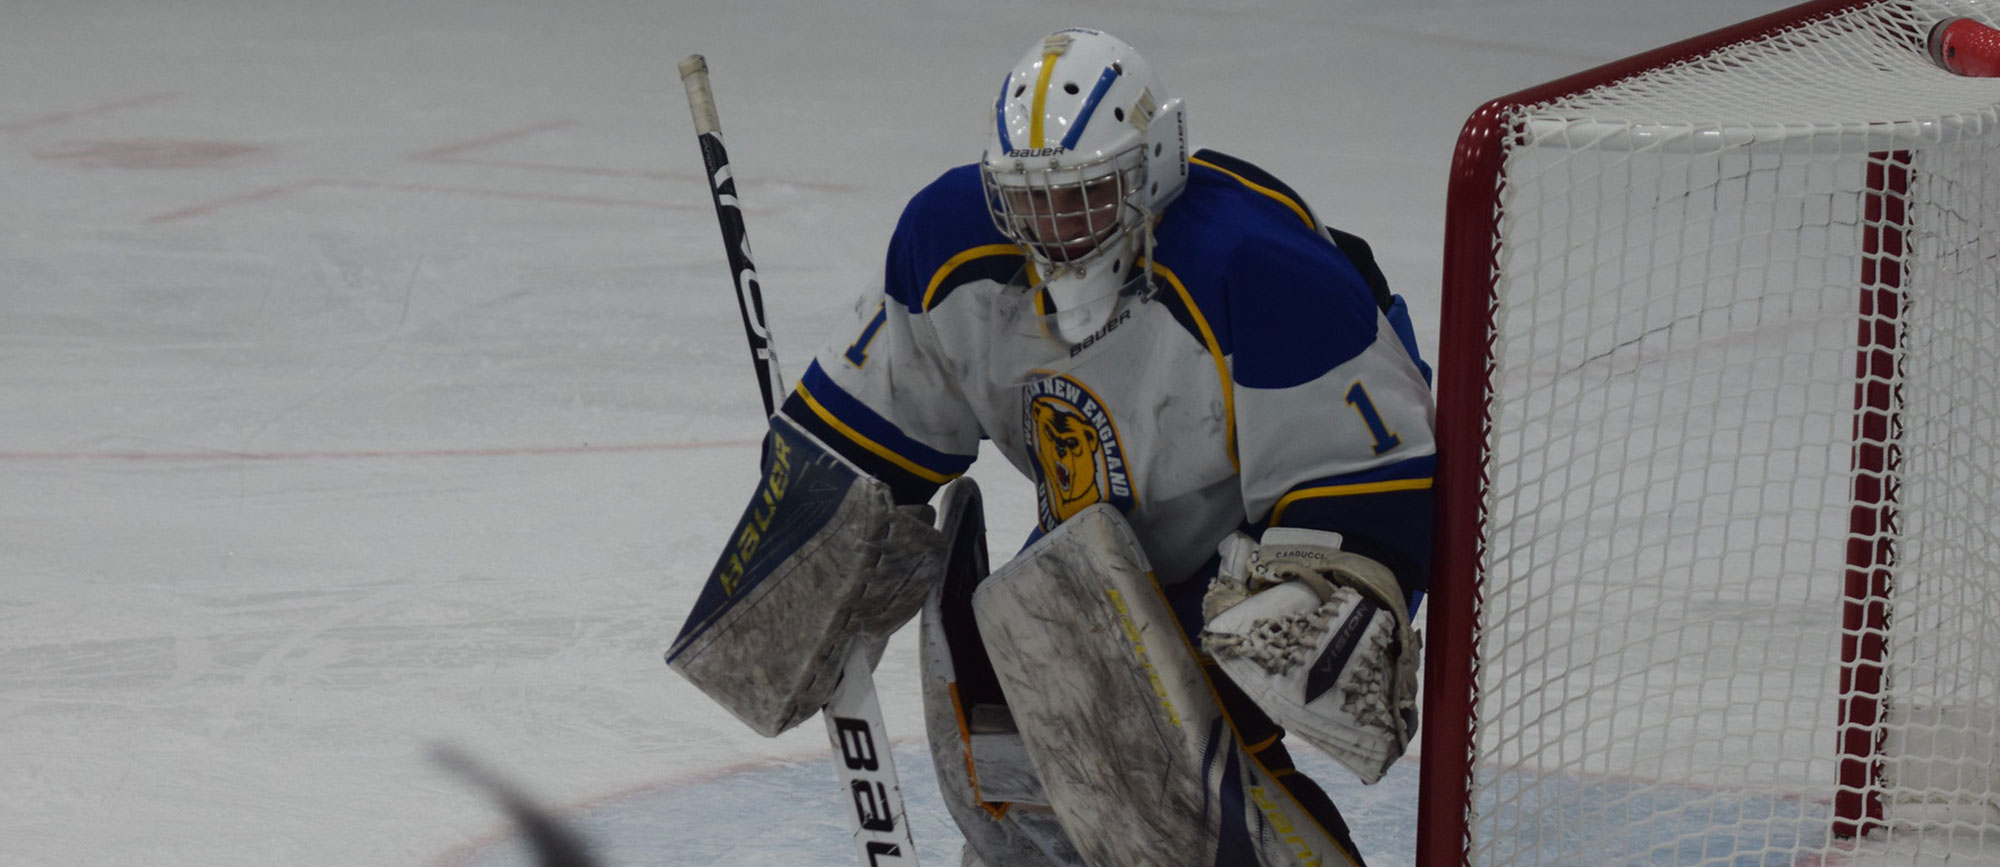 Kyle Carducci had 50 saves against Endicott on Friday evening. (Photo by Rachael Margossian)